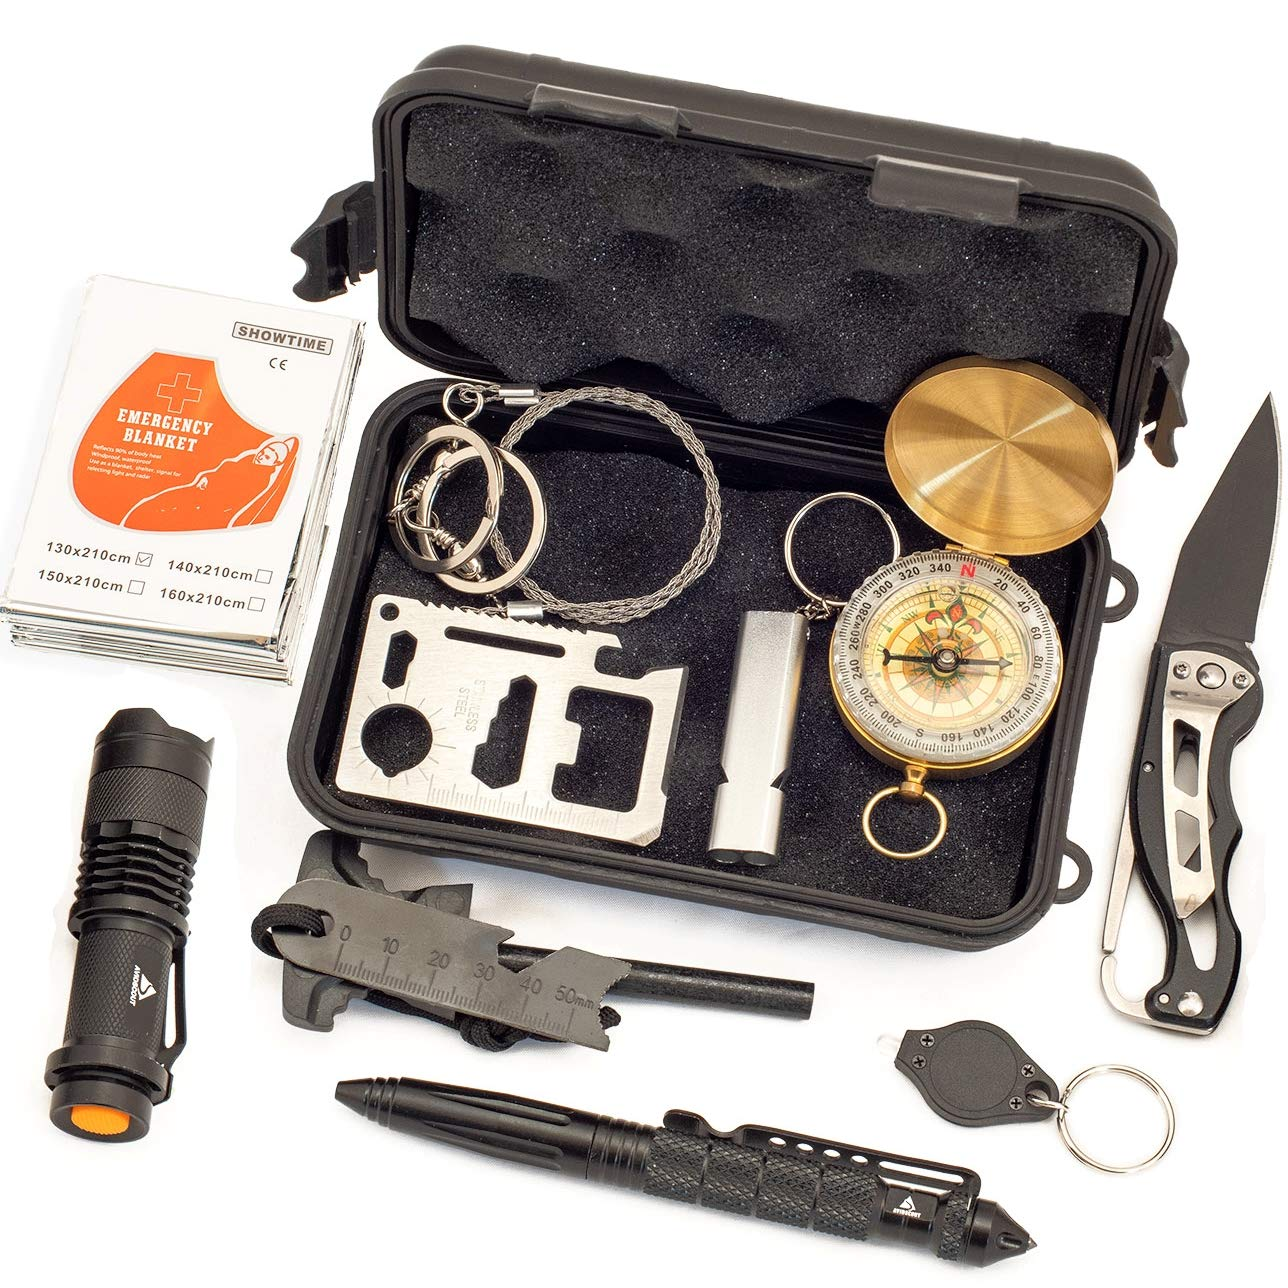 AvidScout Emergency Survival Kit - Life Saving Tools in a Compact Waterproof Case - Flashlights, Compass, Fire Starter, Multi-tool, Blanket and more. For Camping Hiking Biking Hunting Fishing... by AvidScout